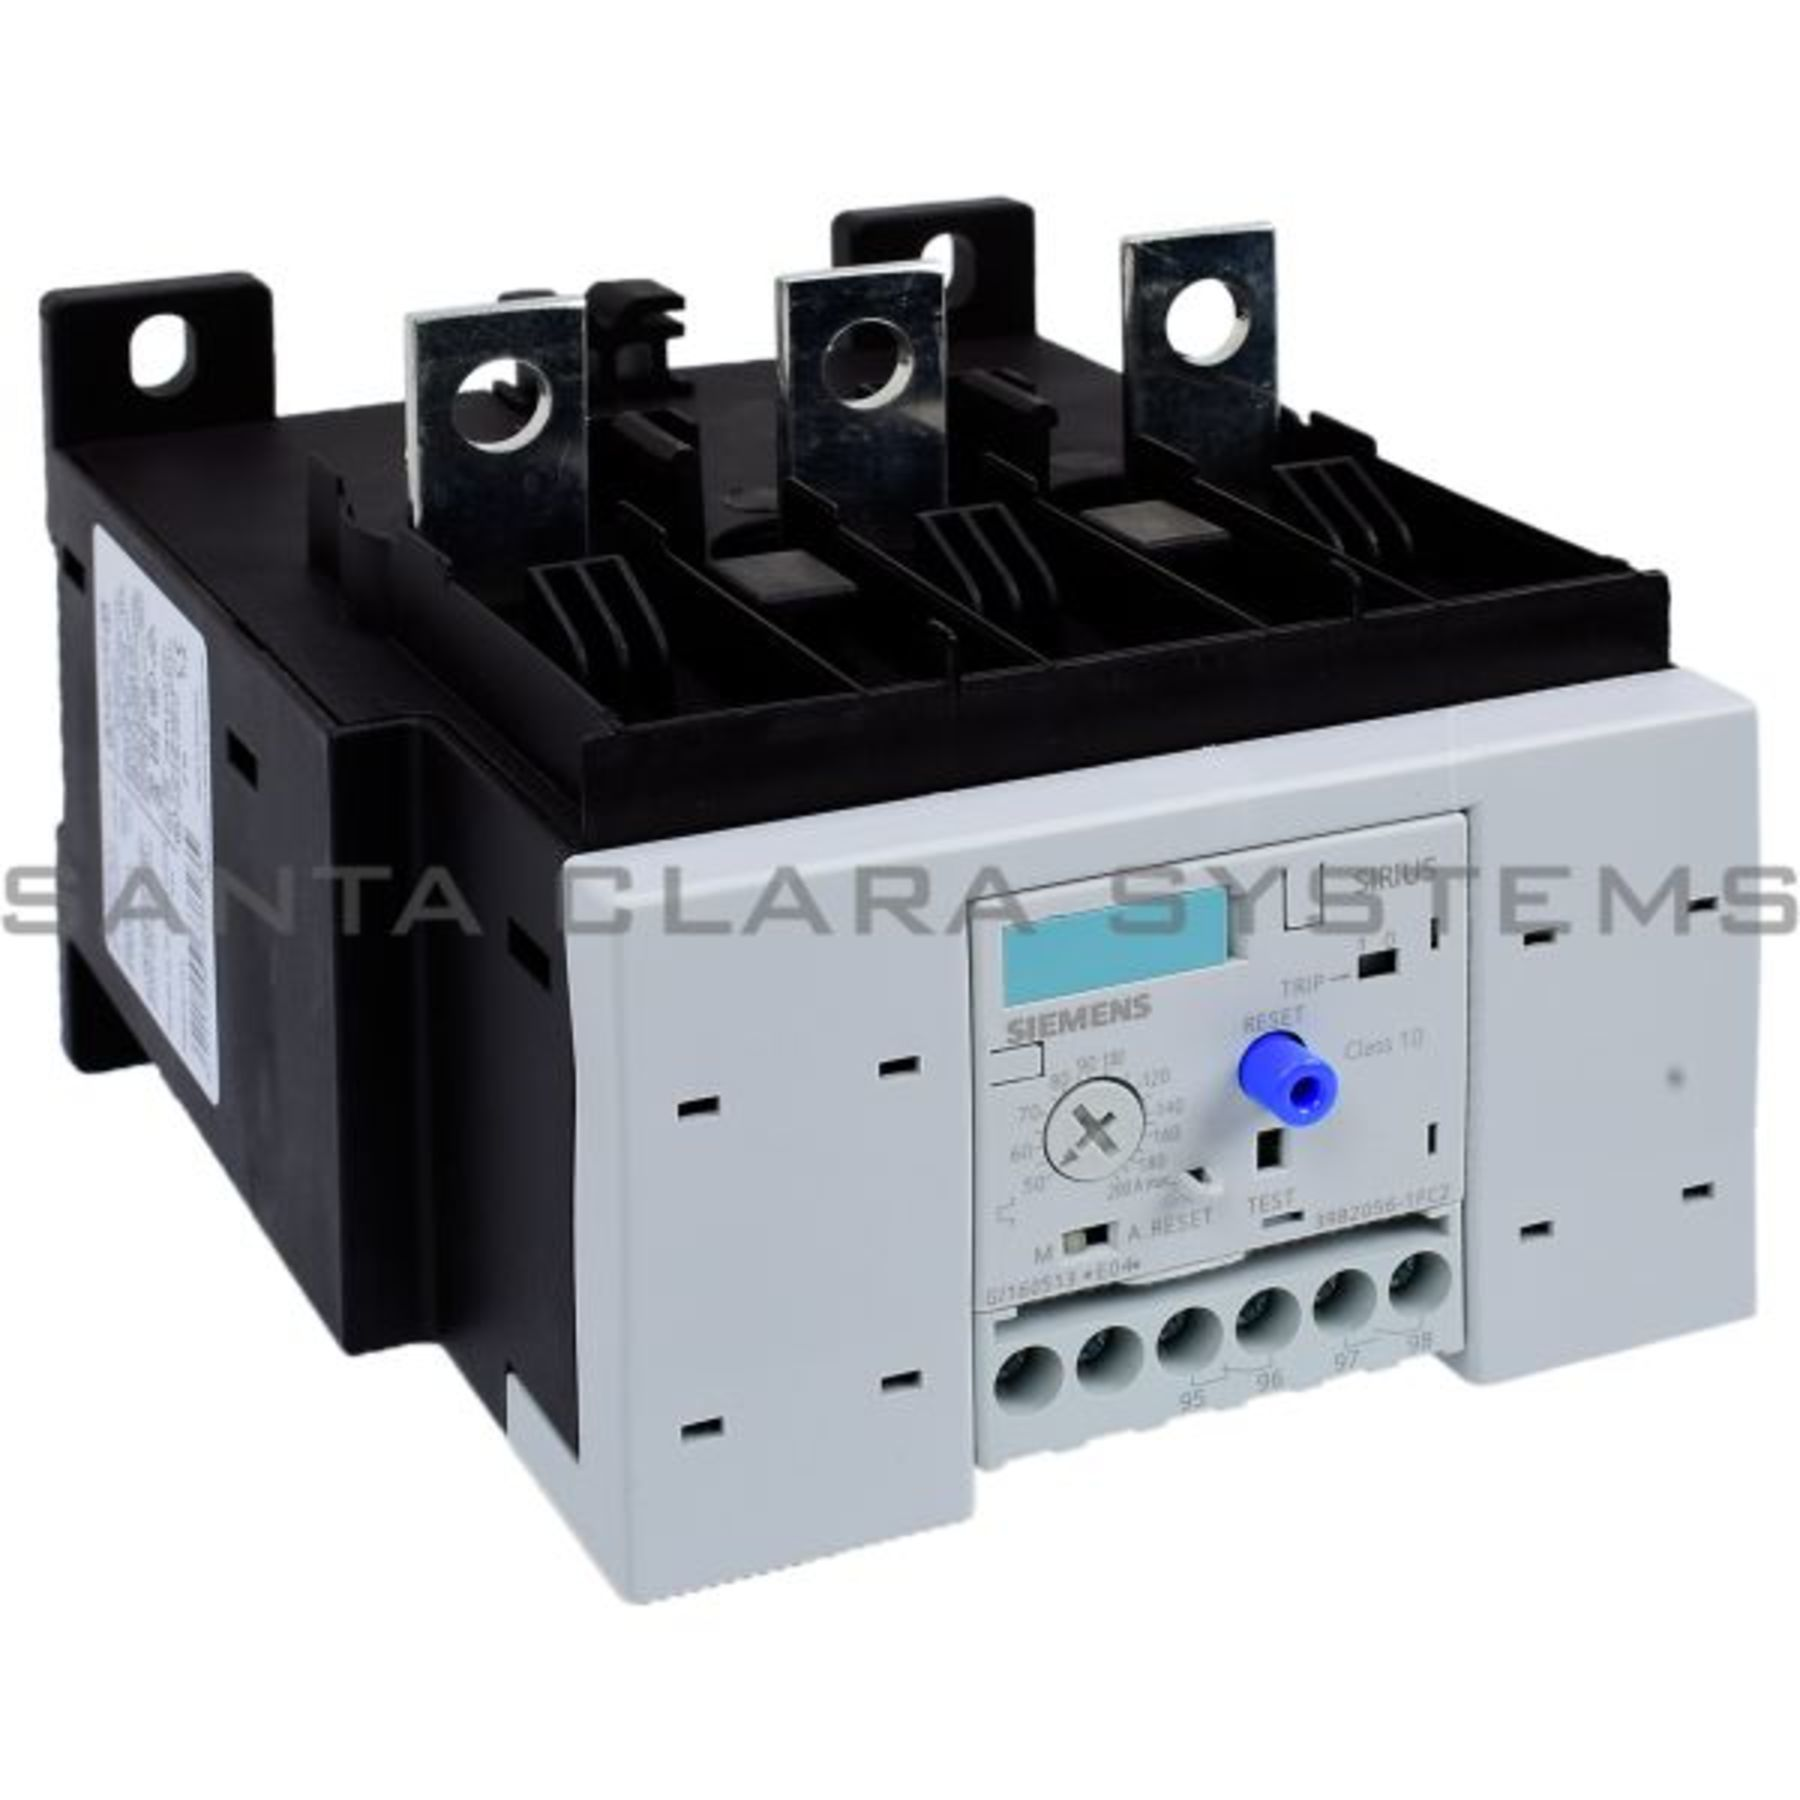 3RB2056-1FC2 Overload Relay   3RB2056-1FC2 In stock and ready to ...